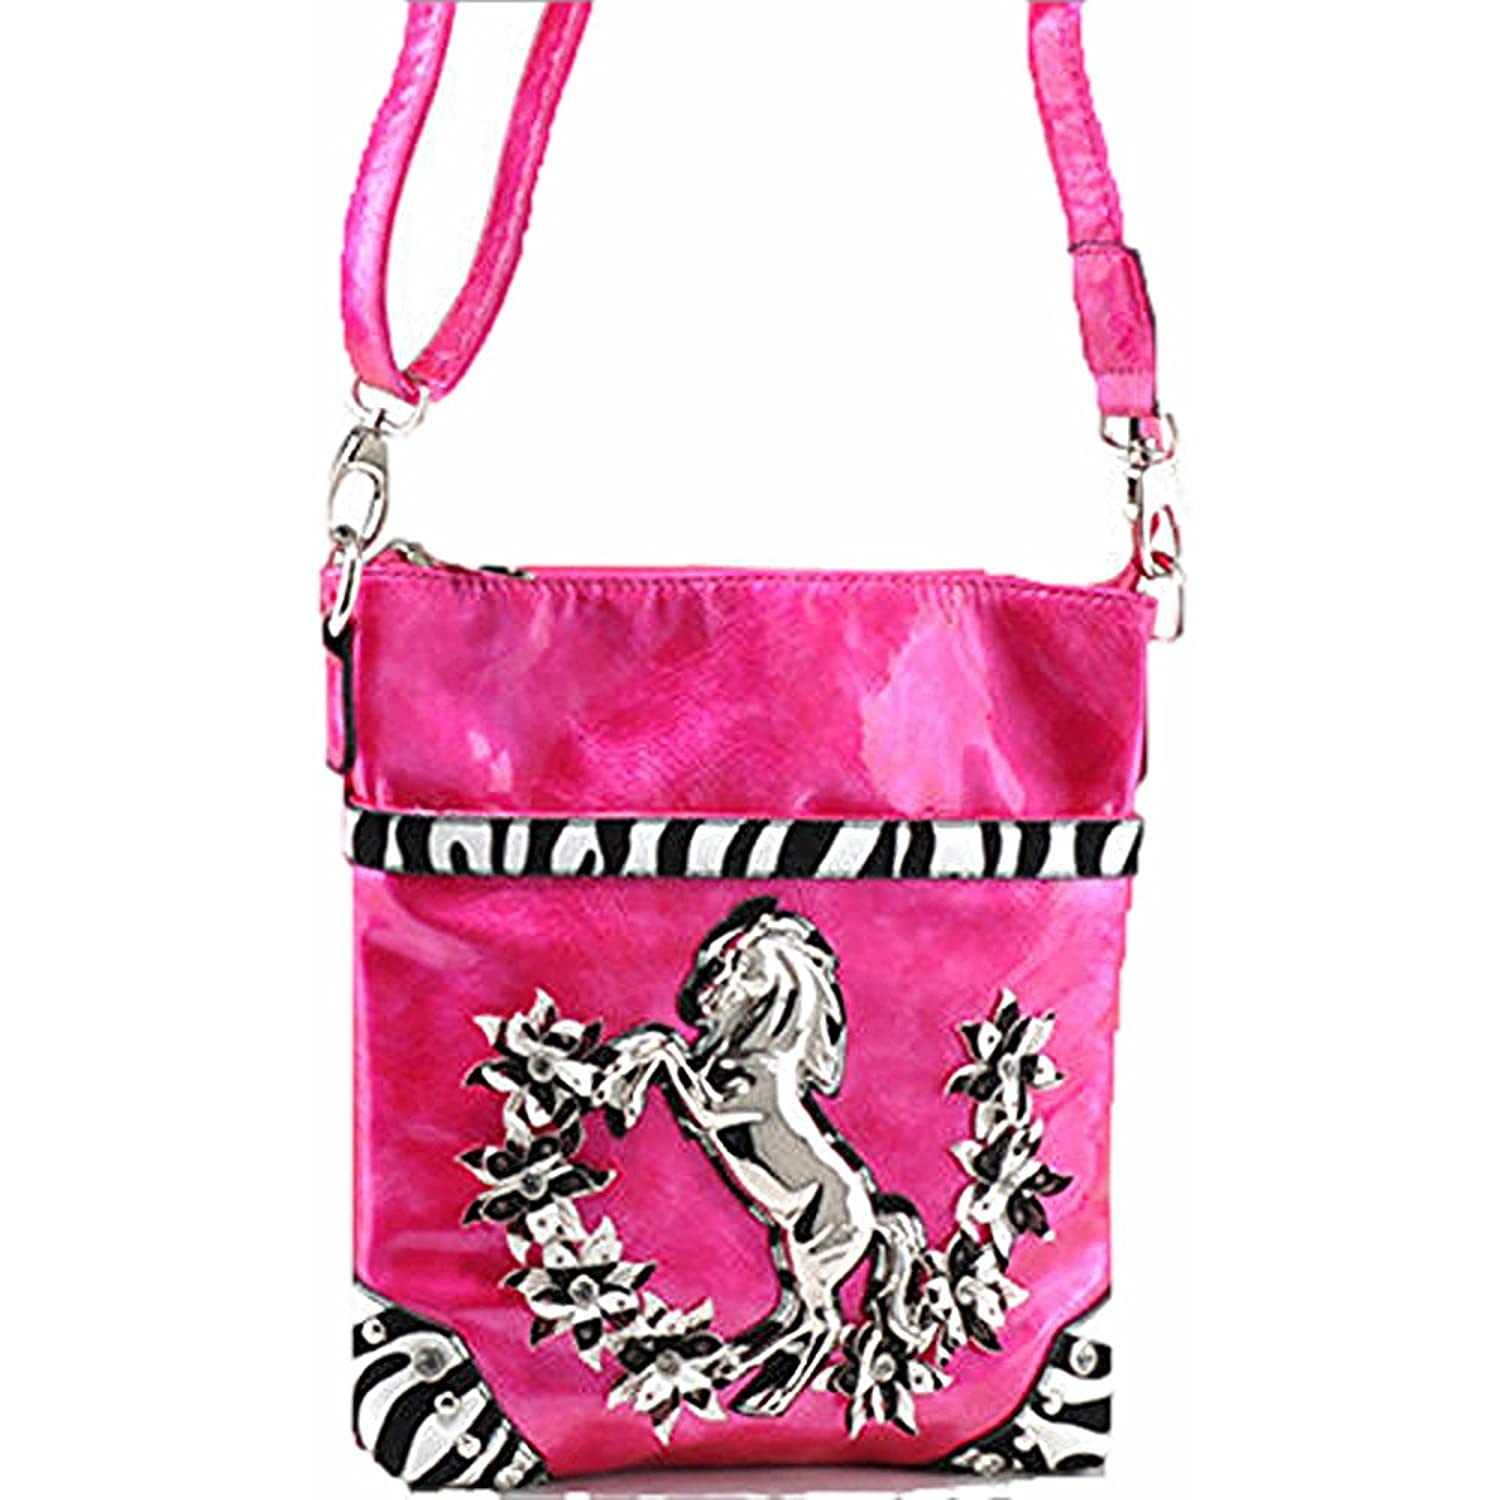 LA Rhinestone Horseshoe Horse Messenger Bag Zebra Flower Purse